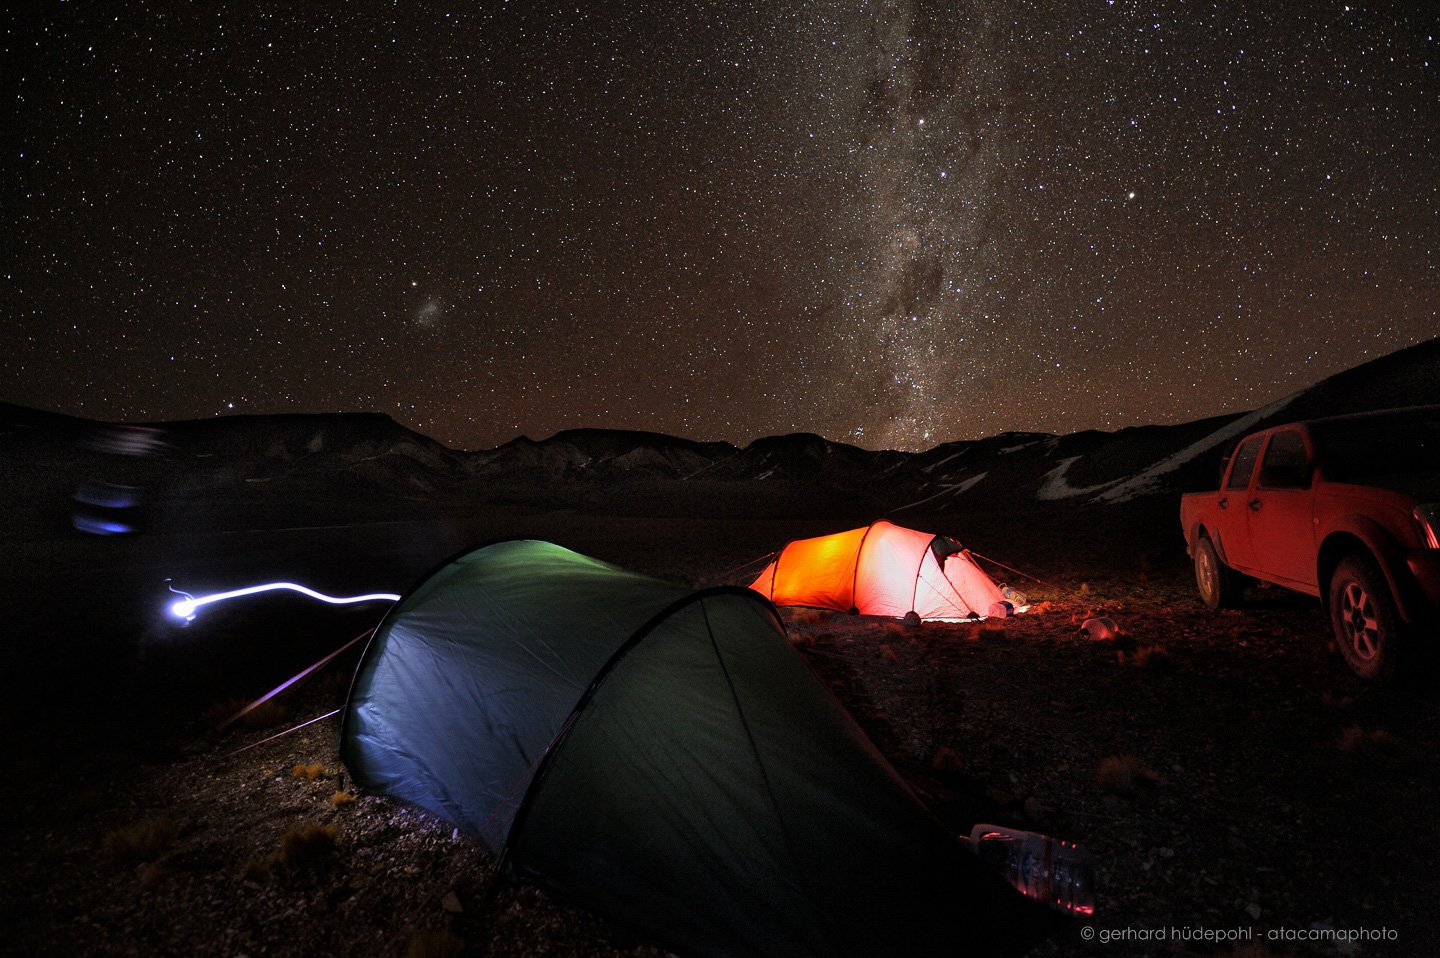 Camping in the cold Altiplano under starry skies